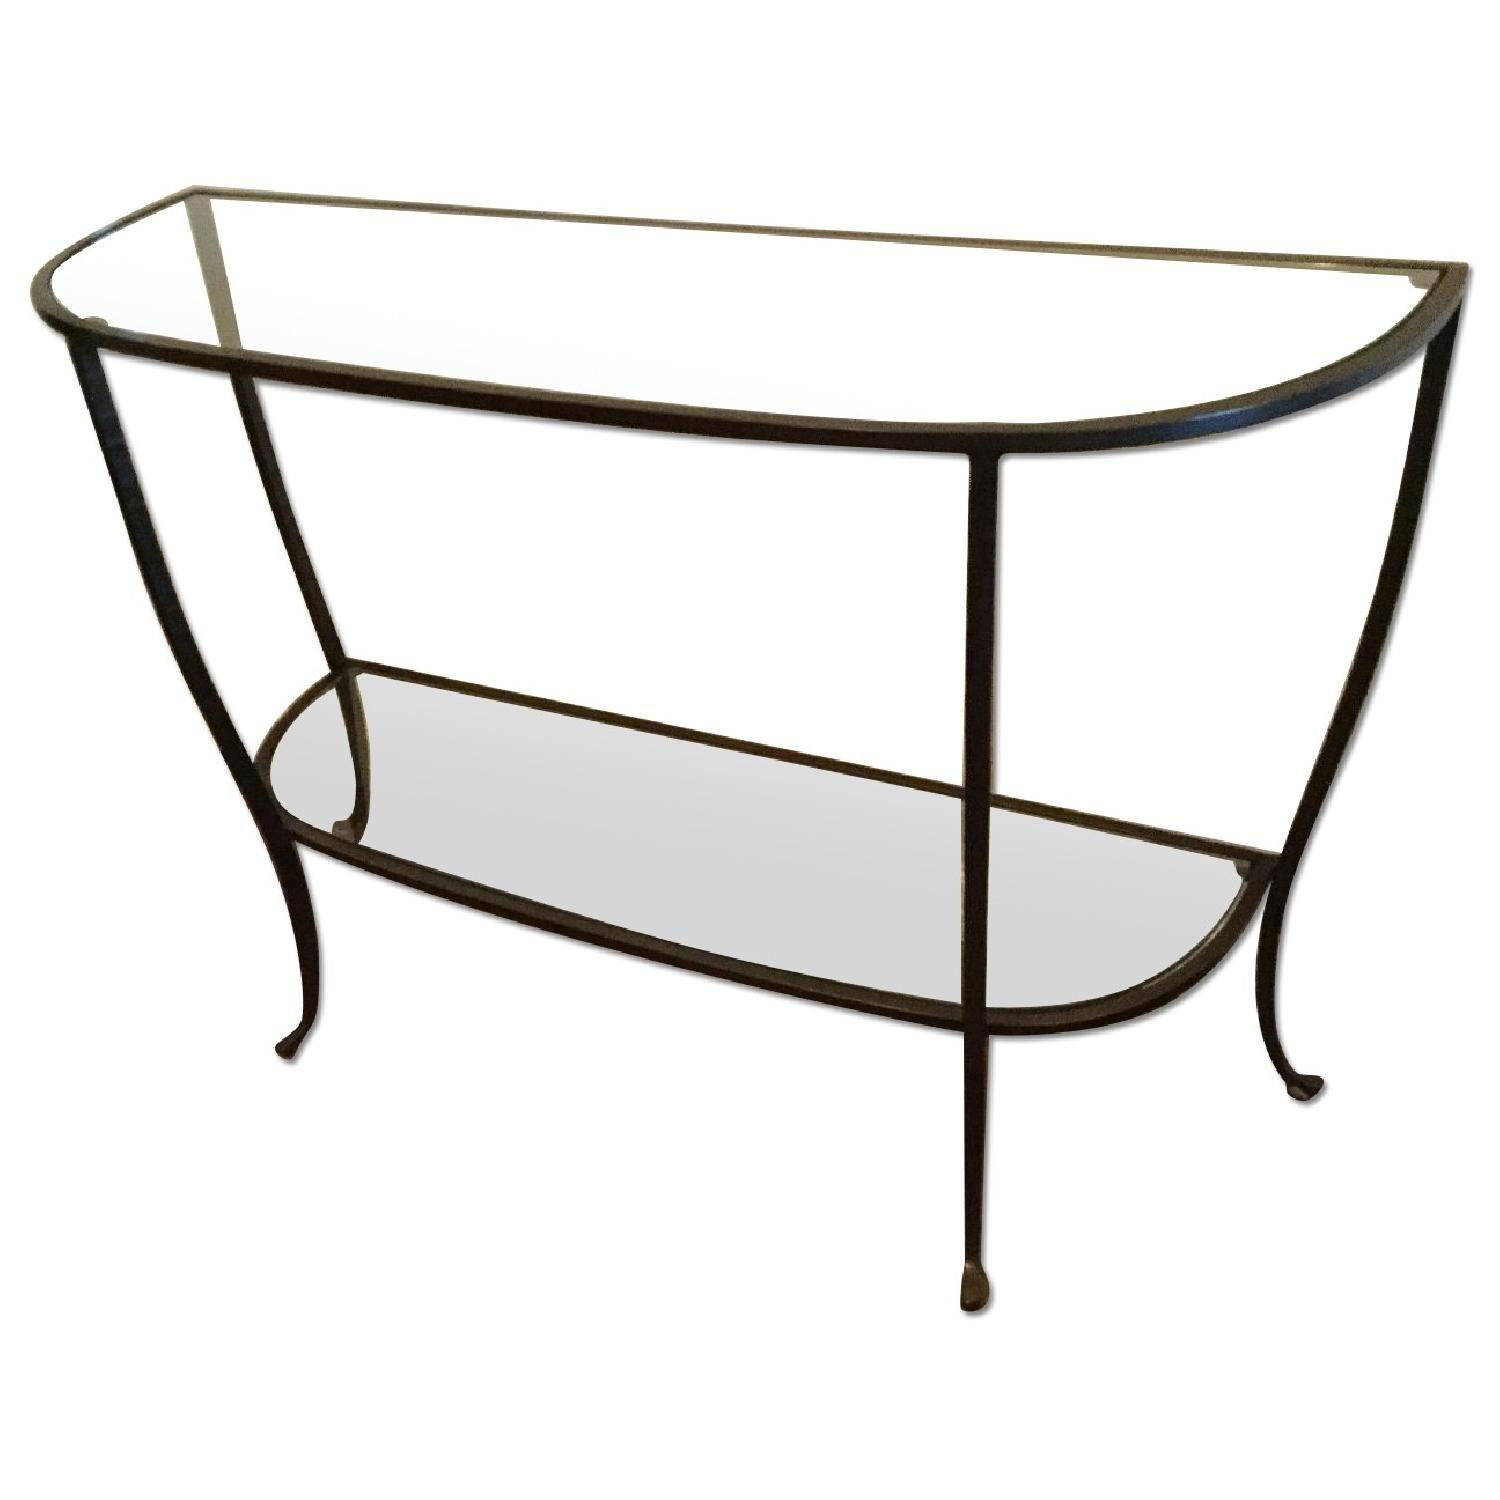 Pottery Barn Glass Iron Console Table AptDeco - Pottery barn black console table